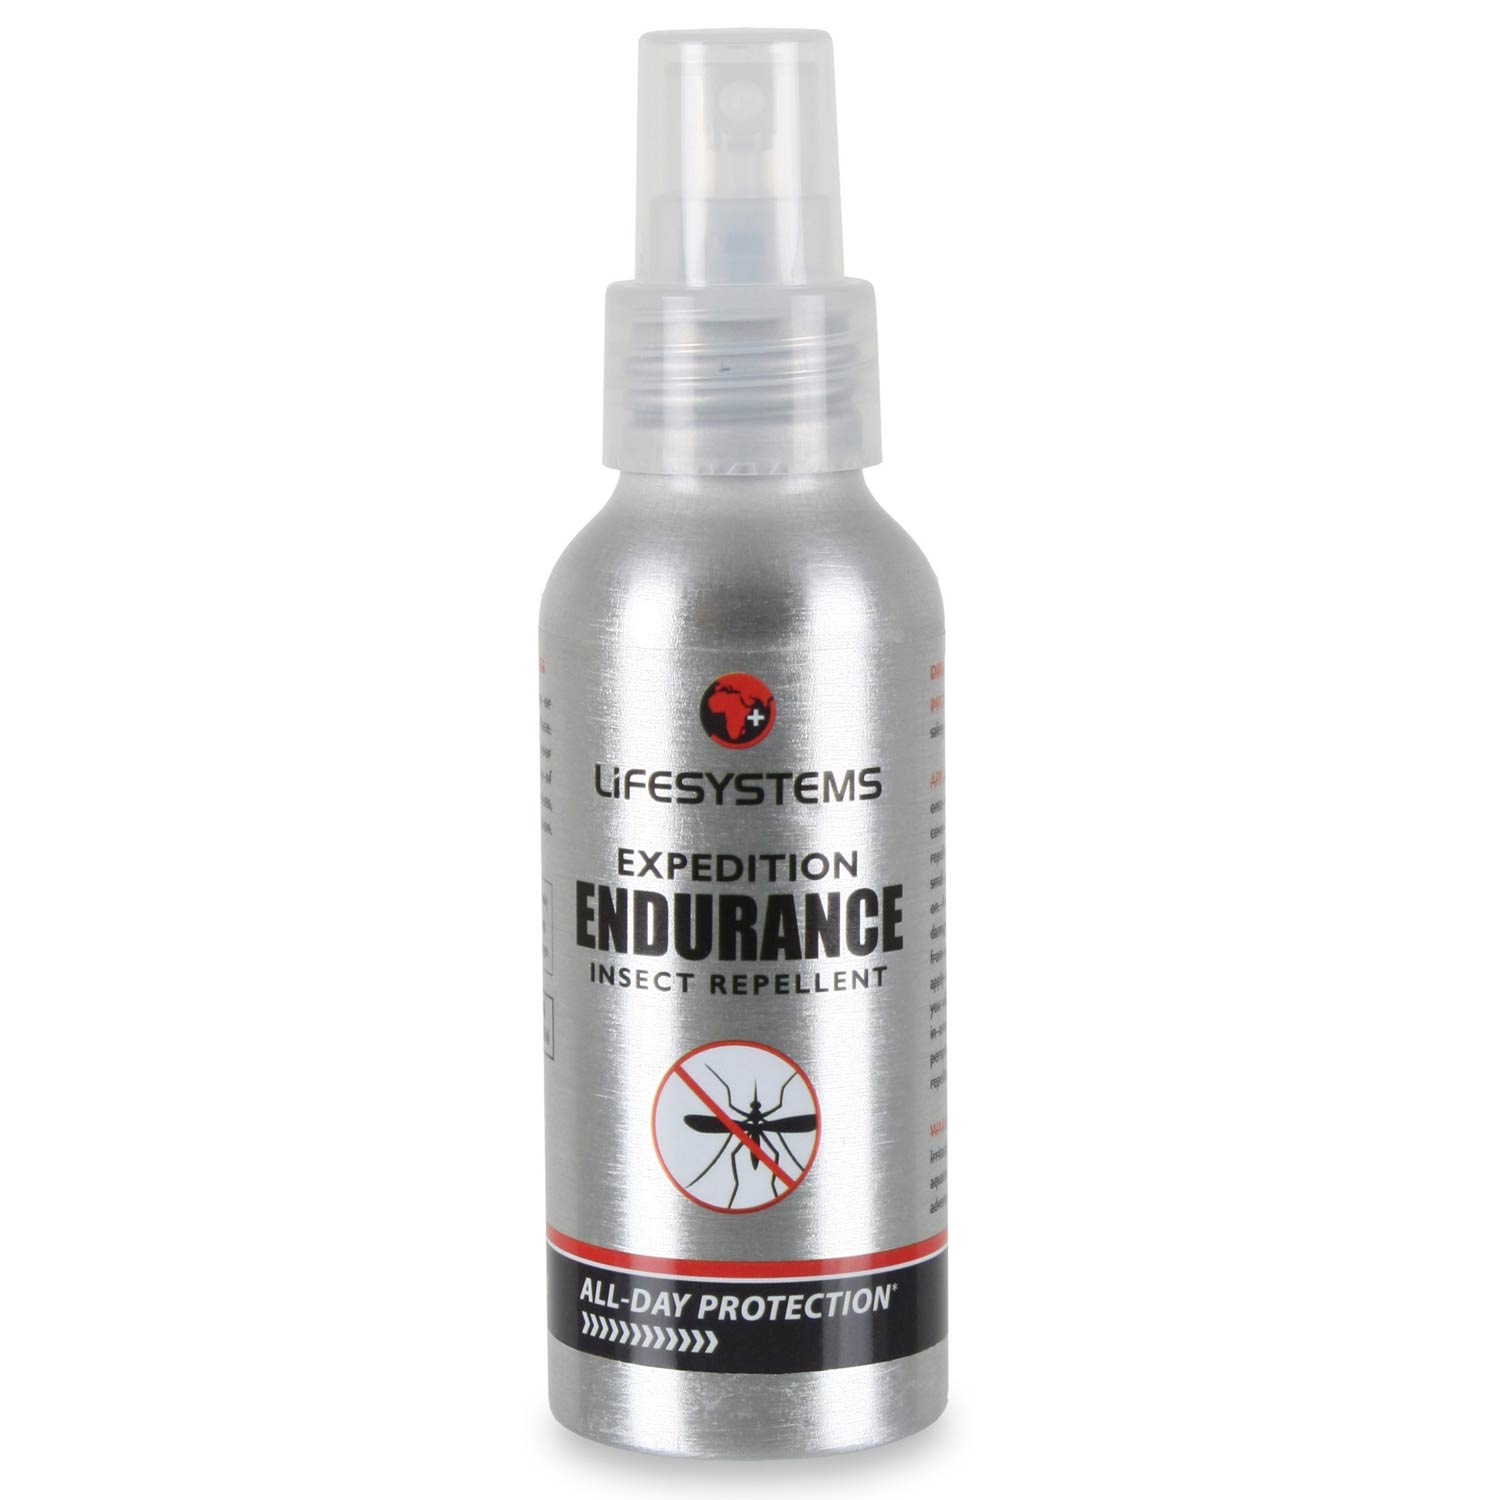 Lifesystems Expedition Endurance Insect Repellent Spray